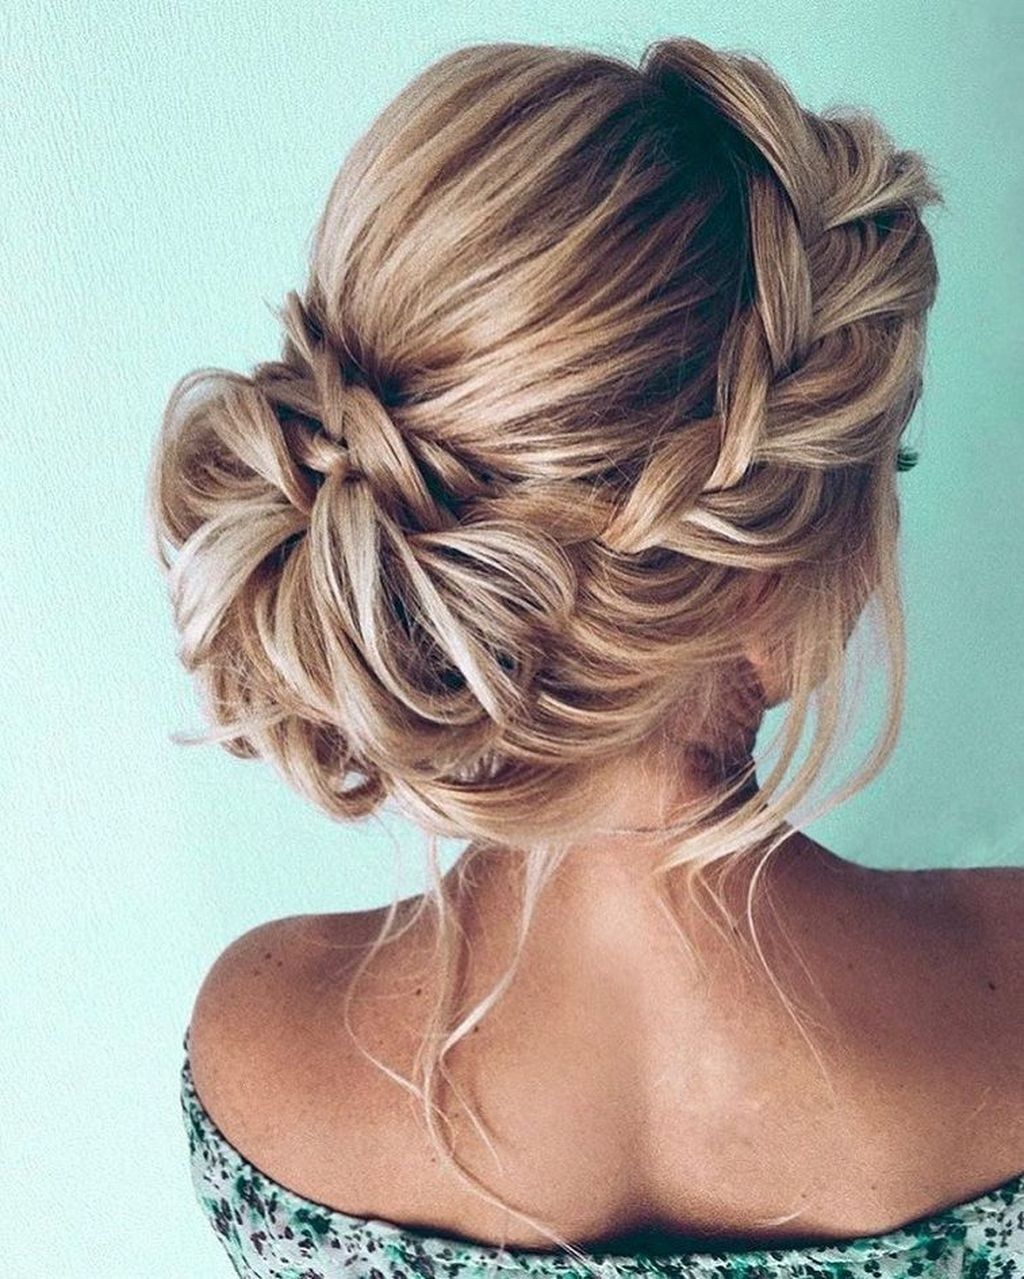 27 Gorgeous Wedding Hairstyles For Long Hair In 2019: 54 Best Elstile Wedding Hairstyles For 2019 In 2019